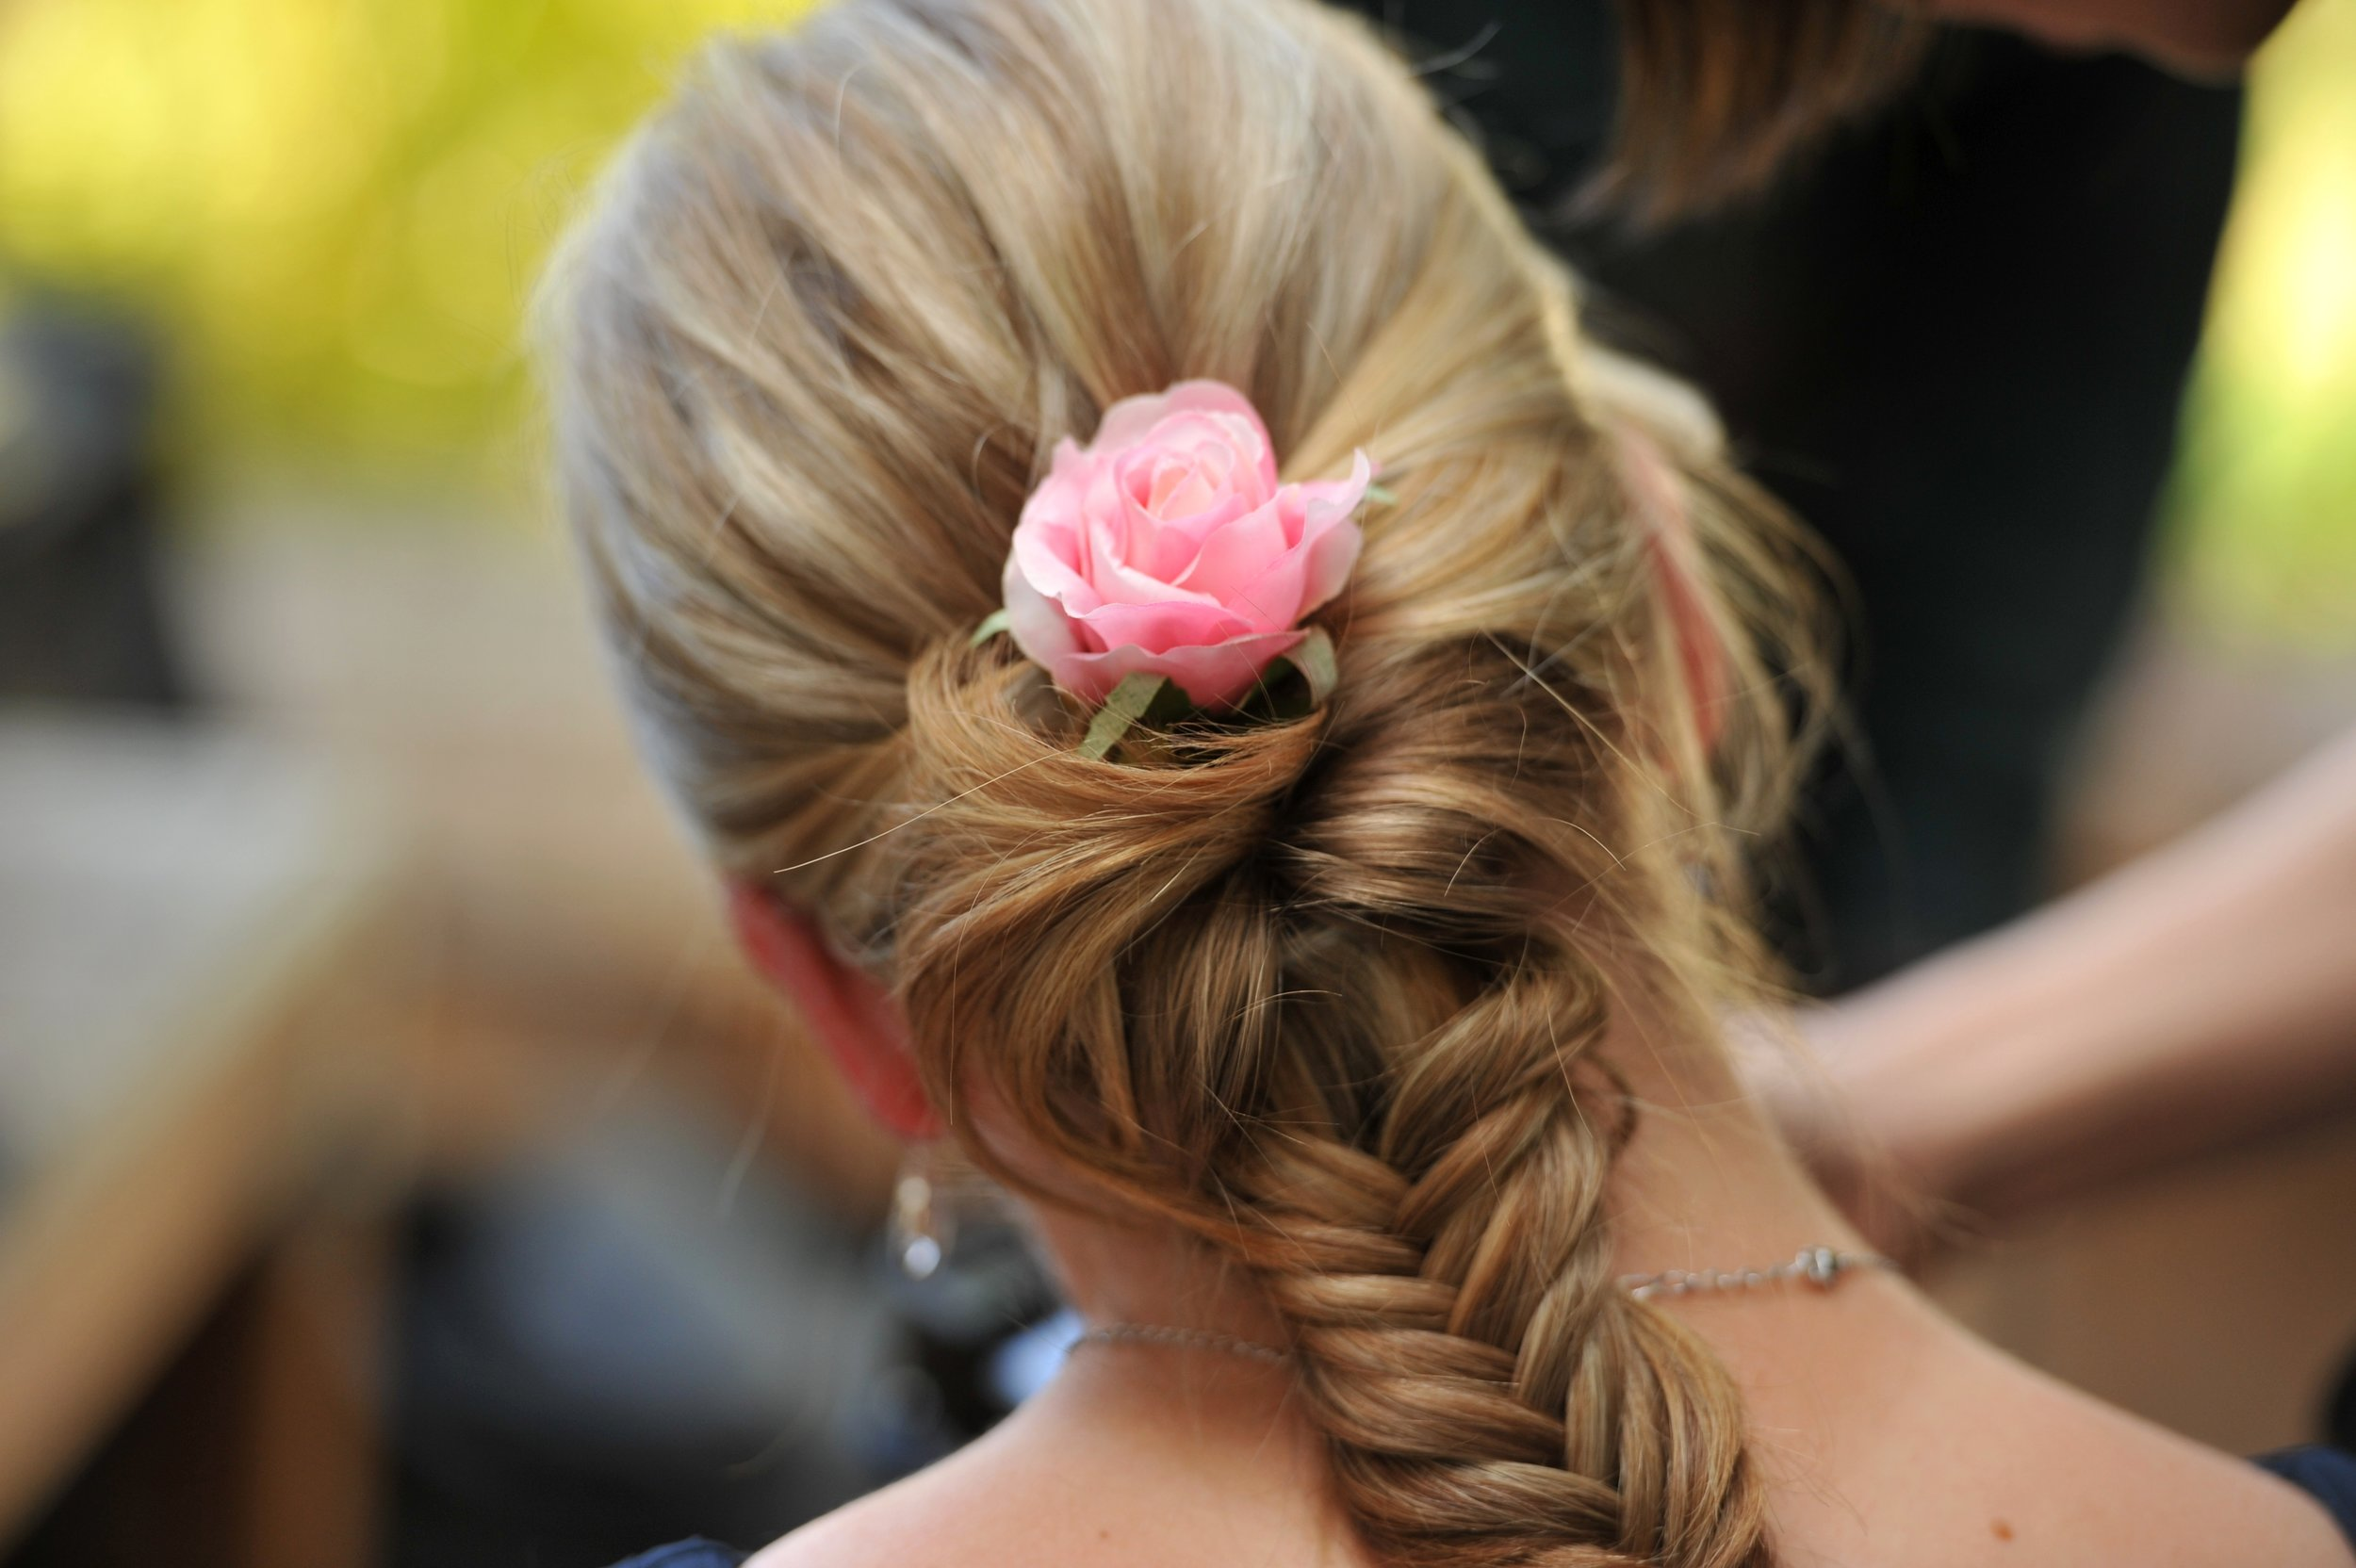 melbourne hairstylists